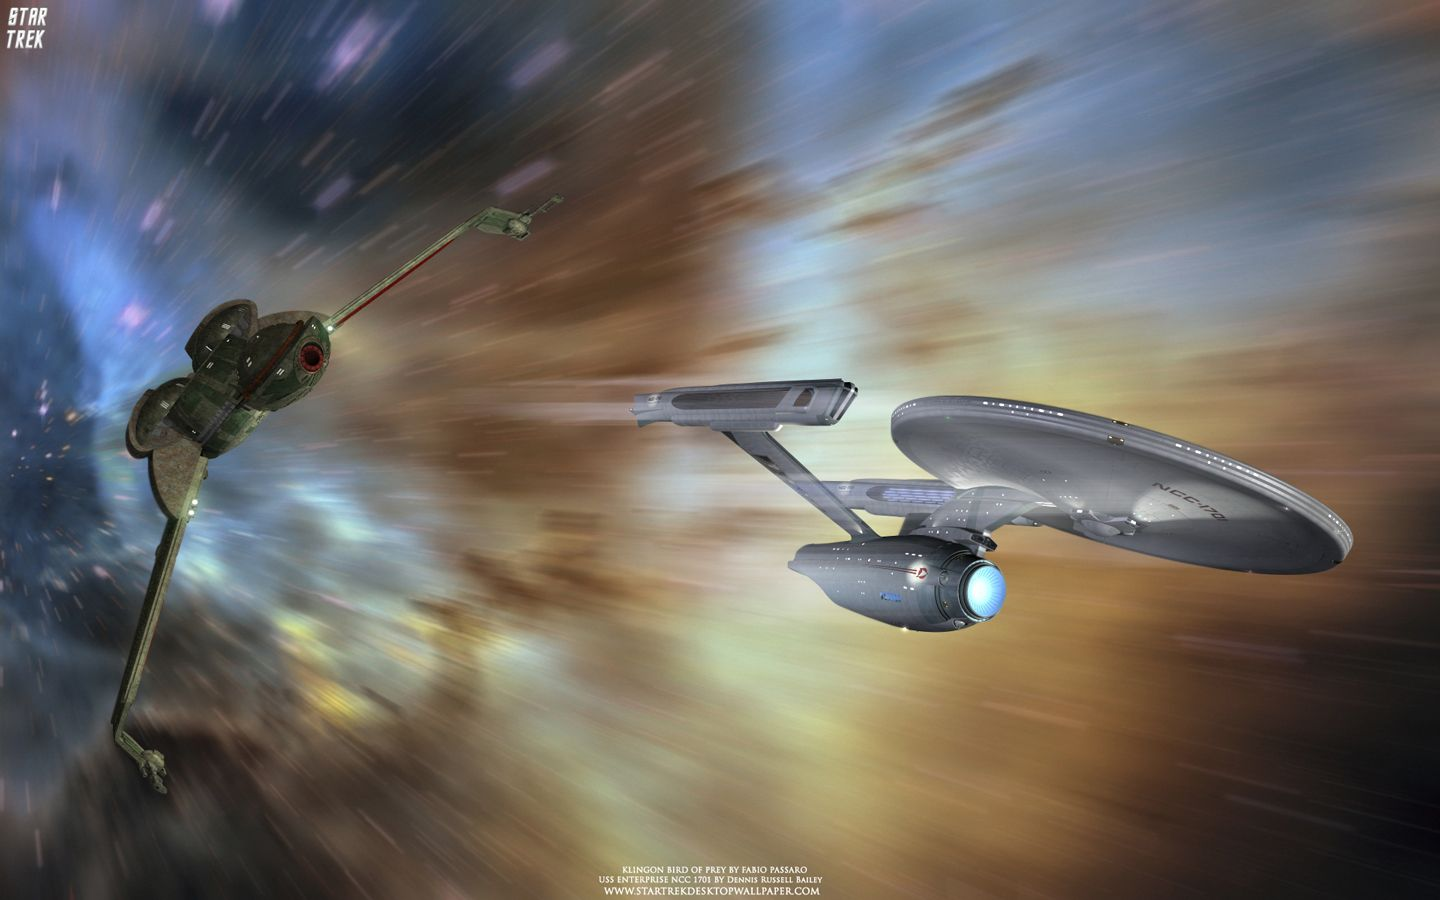 Star Trek Bird Of Prey Chasing Uss Enterprise Ncc 1701 A Free